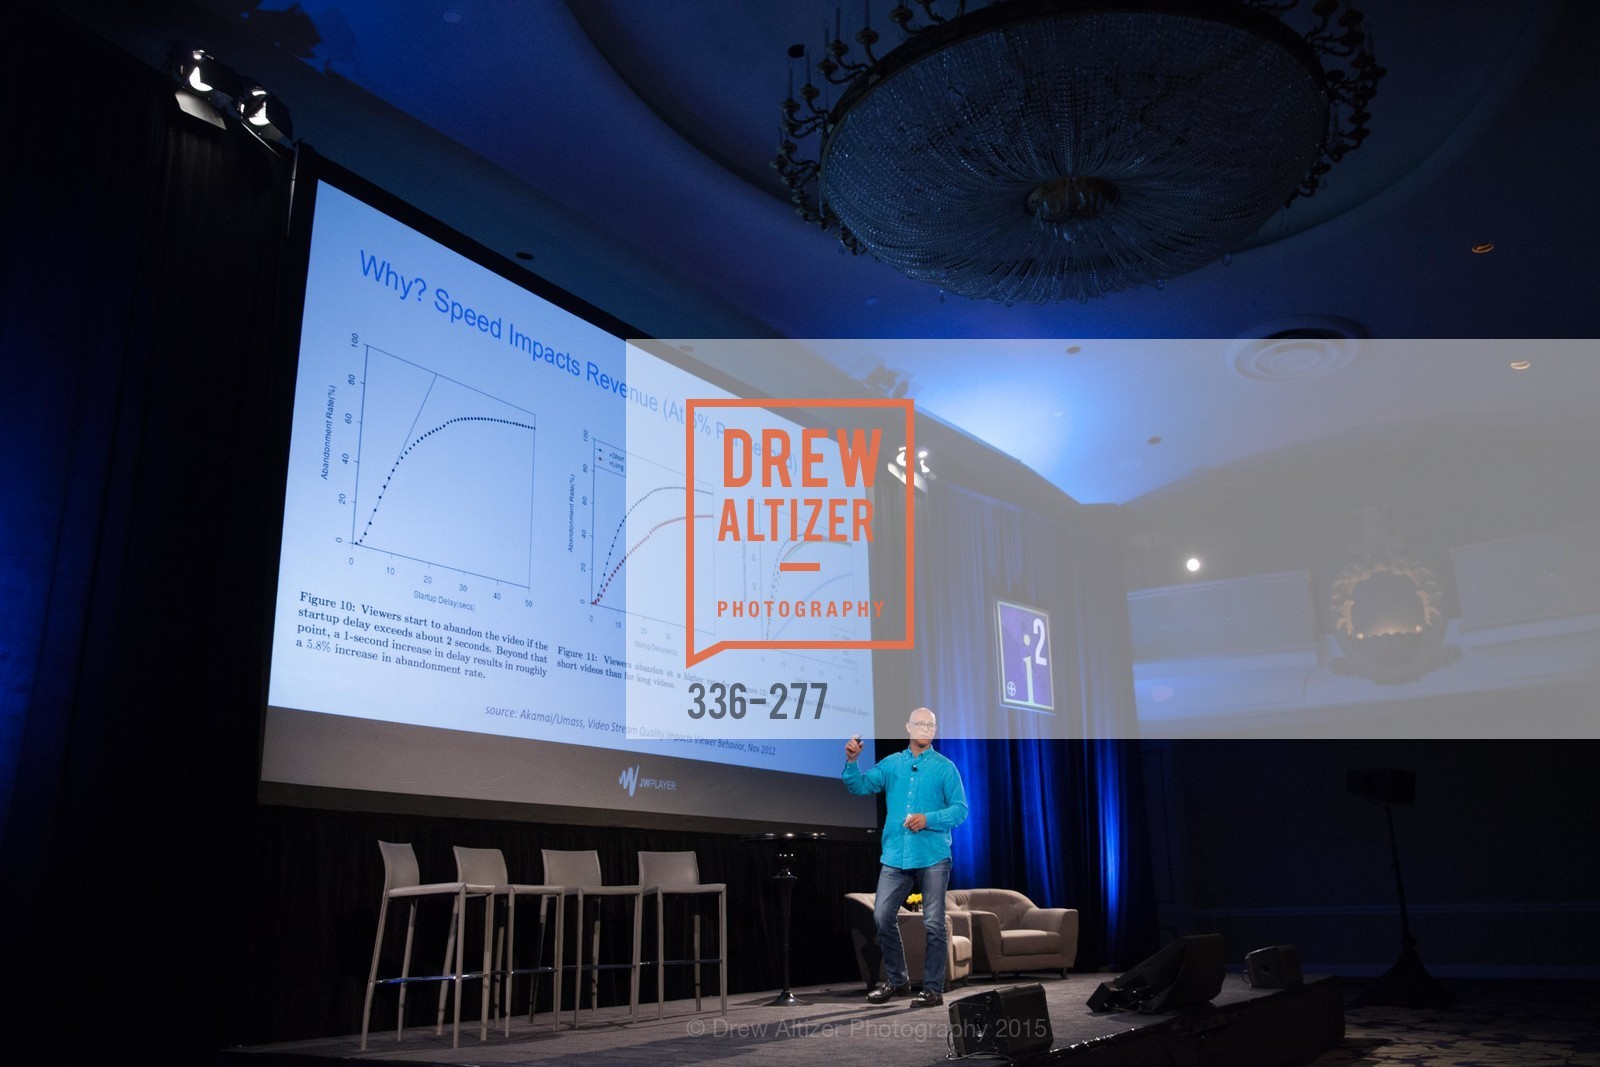 Atmosphere, sovrn i 2 summit 2015, September 9th, 2015, Photo,Drew Altizer, Drew Altizer Photography, full-service agency, private events, San Francisco photographer, photographer california